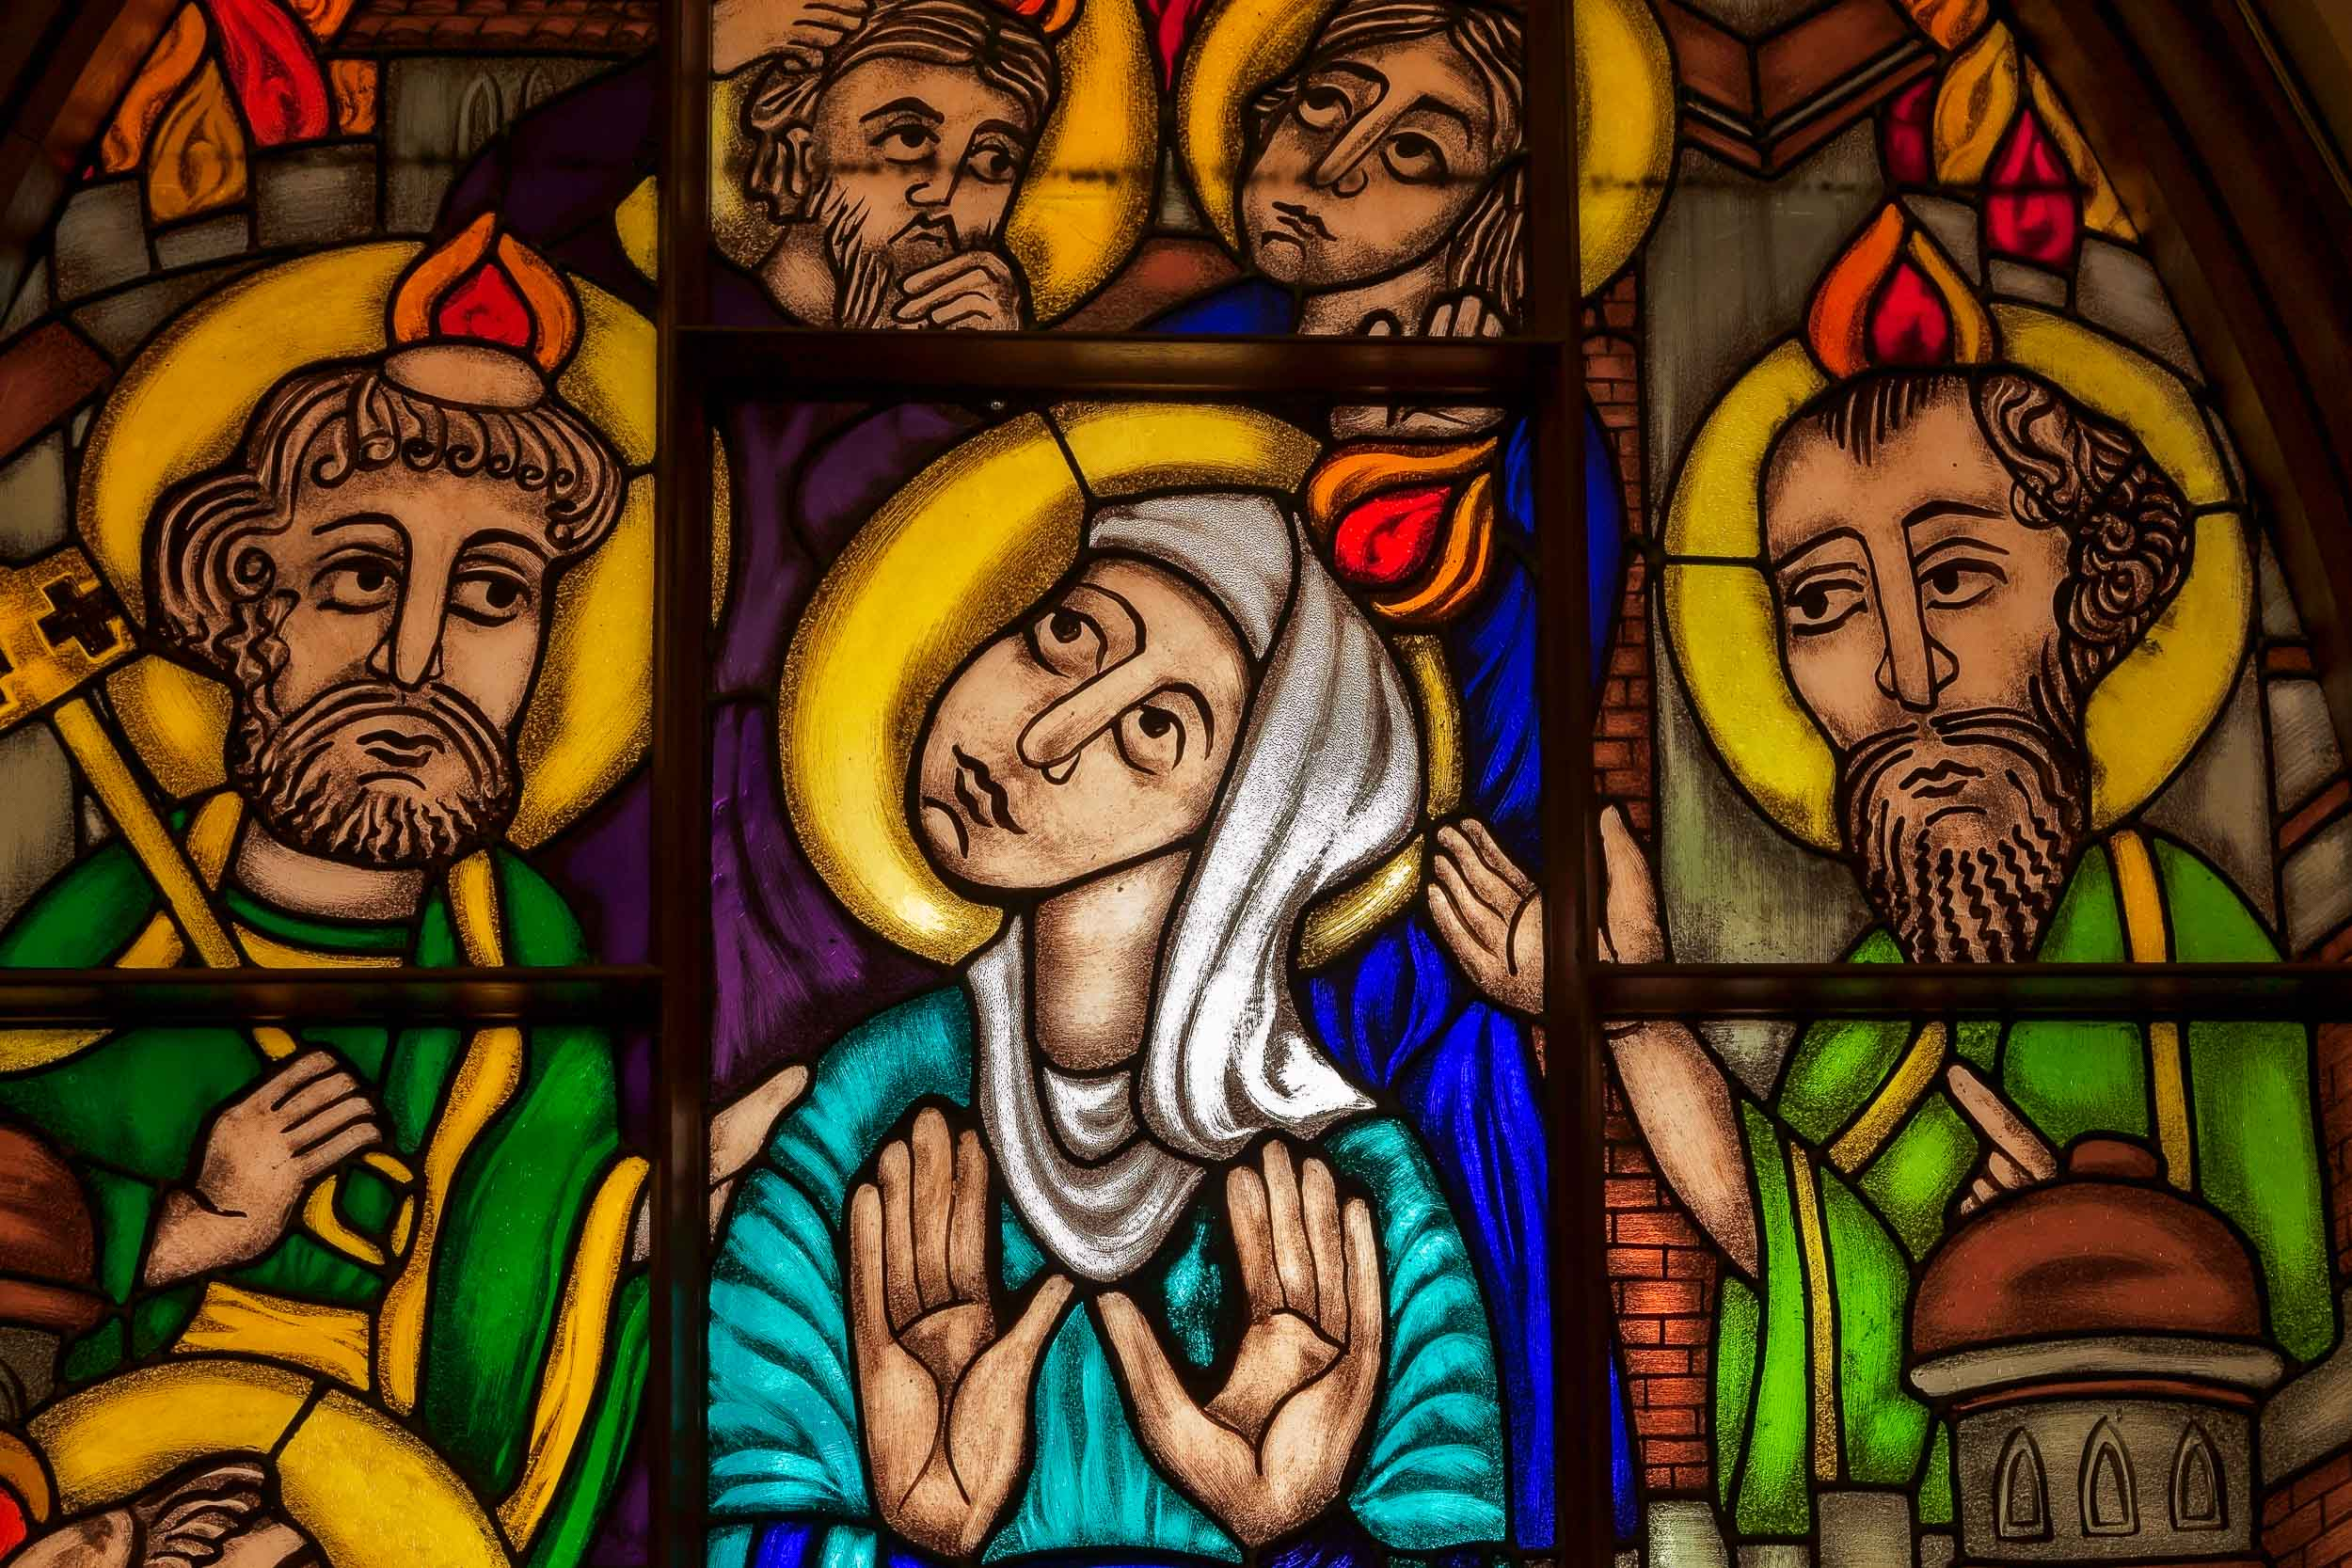 An example of the    spectacular stained glass windows    in    St. Mary's Catholic Church    in    Hamilton, Australia   .